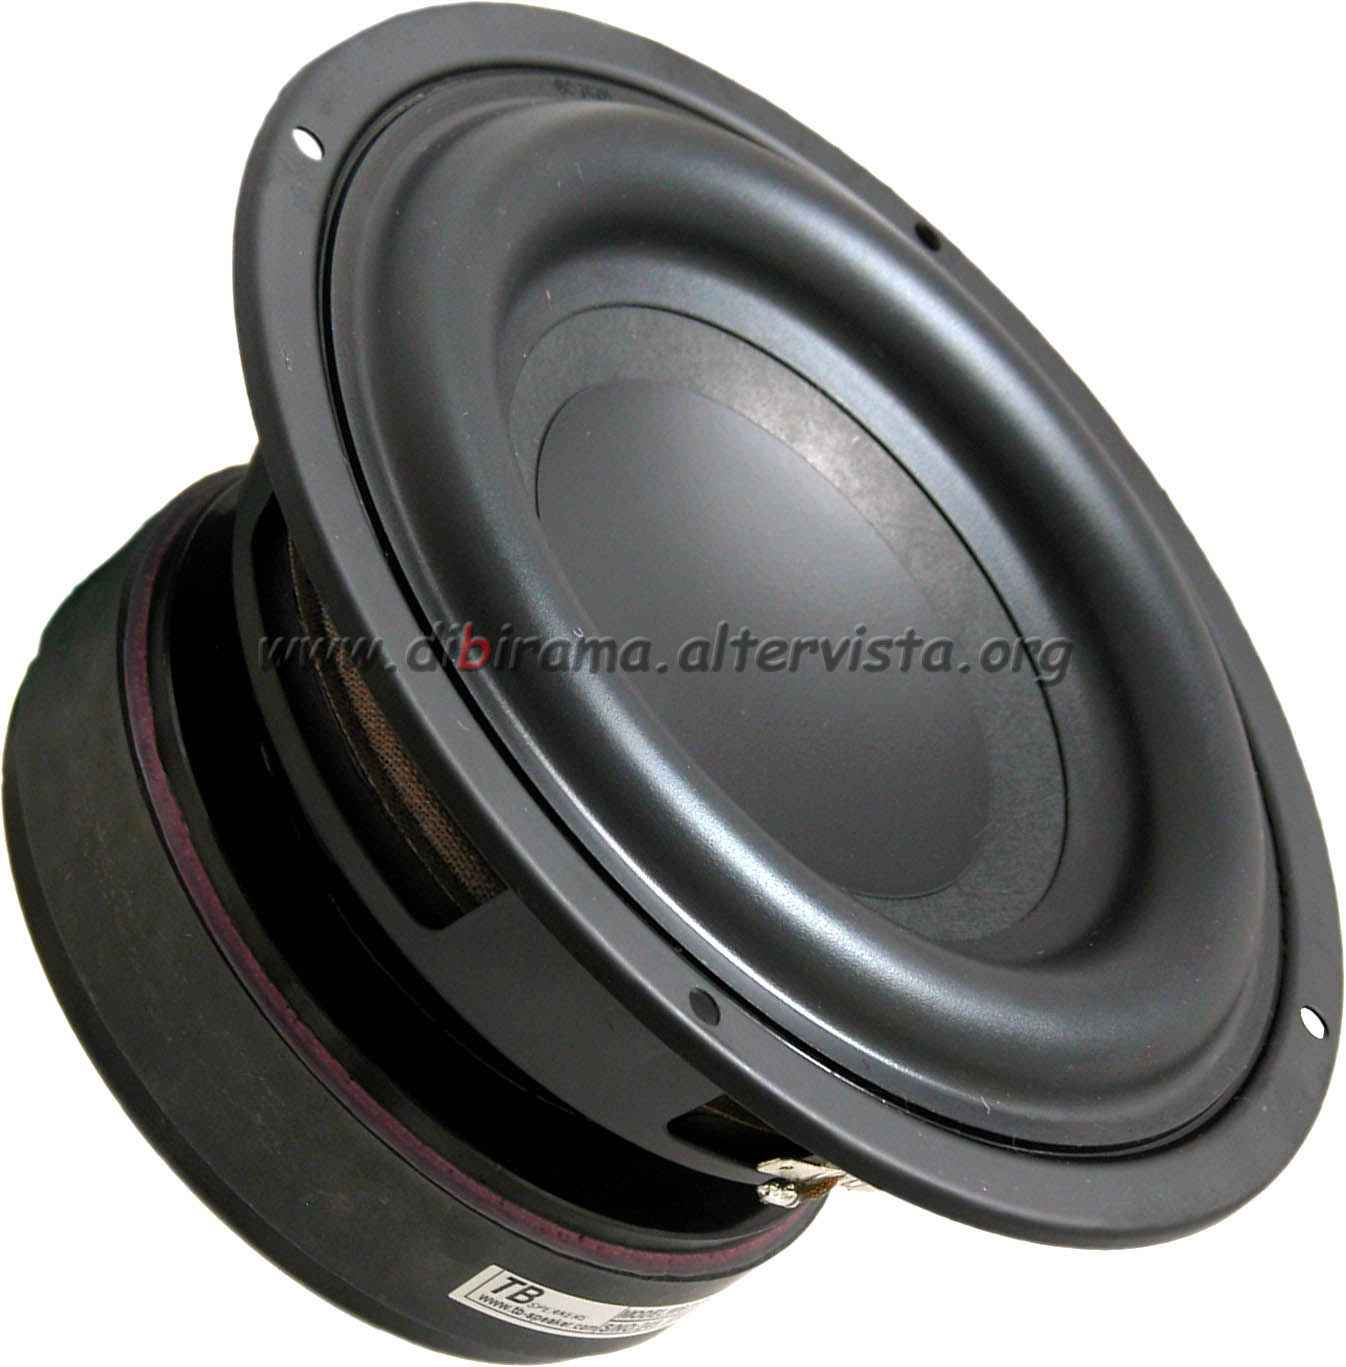 tb-speakers-w6-1139sif-sub-woofer-6-5-4-ohm-100-wmax